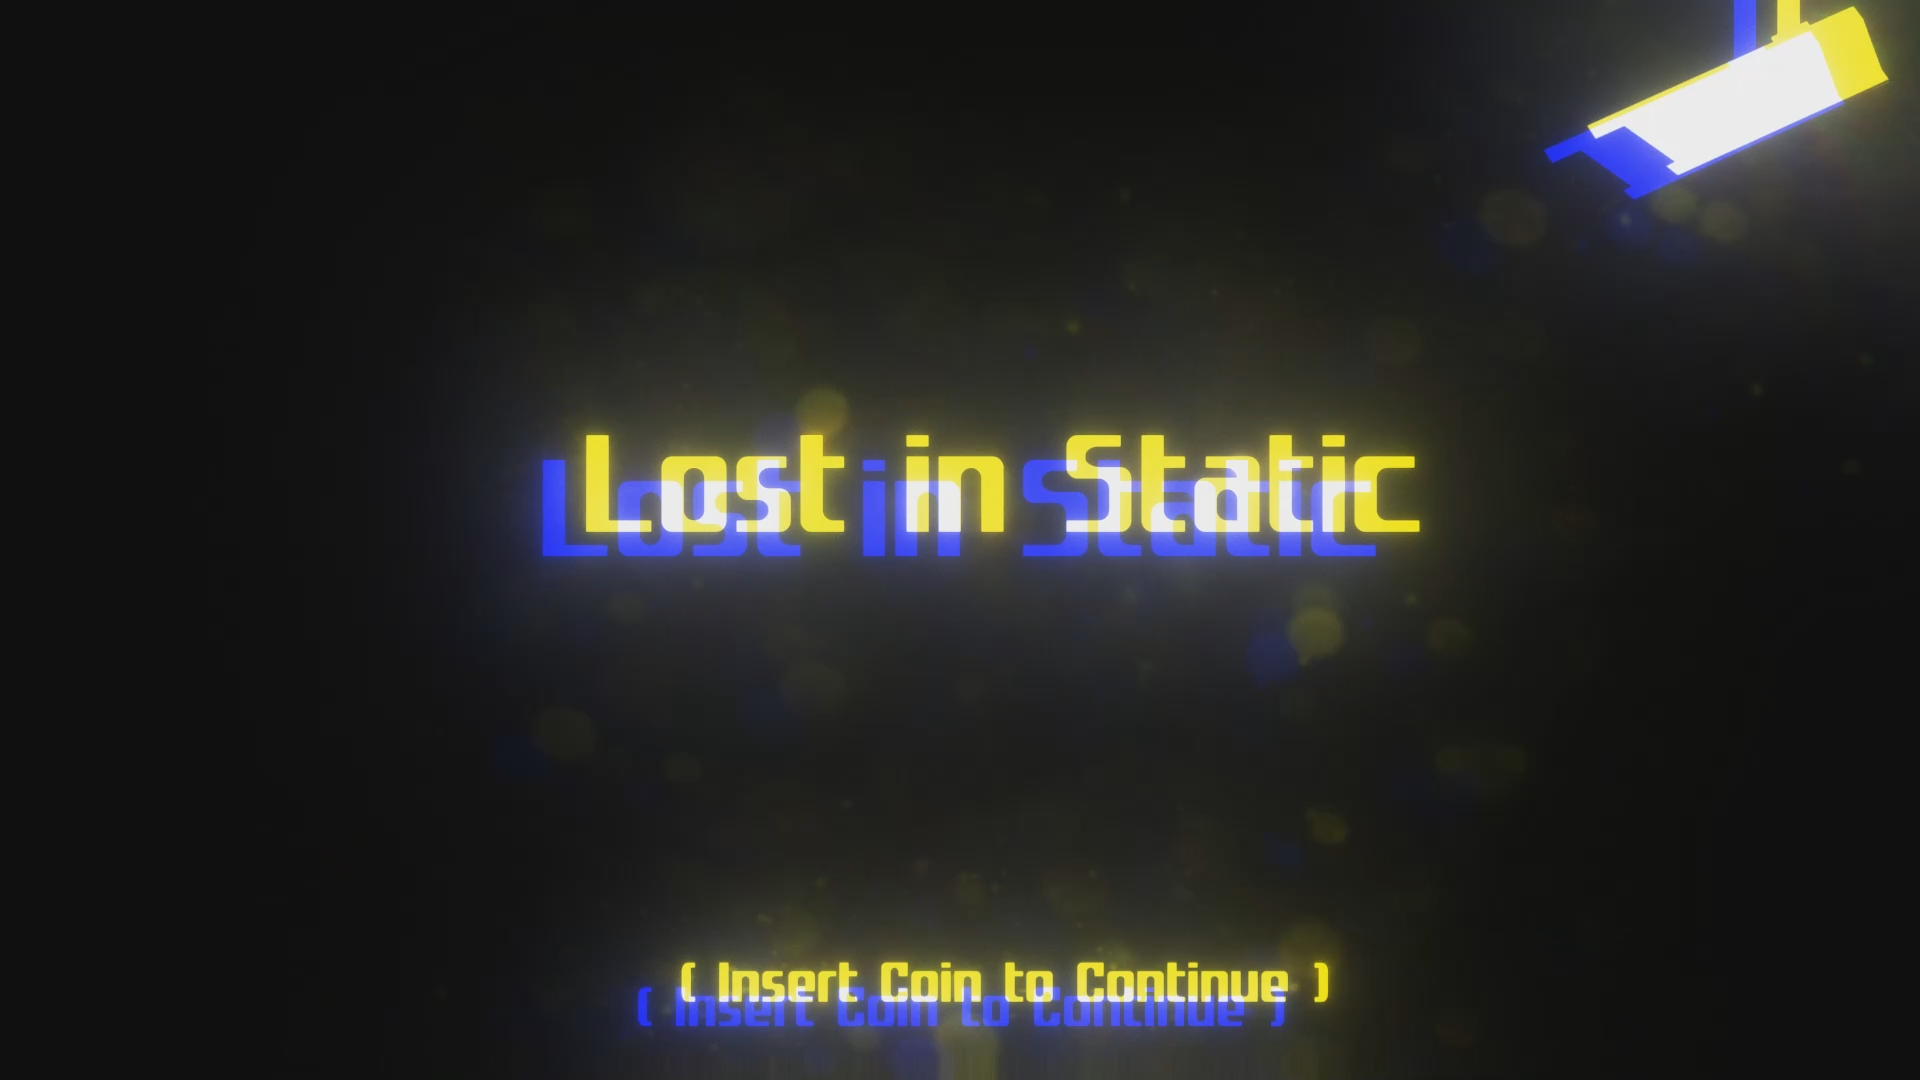 Lost in Static